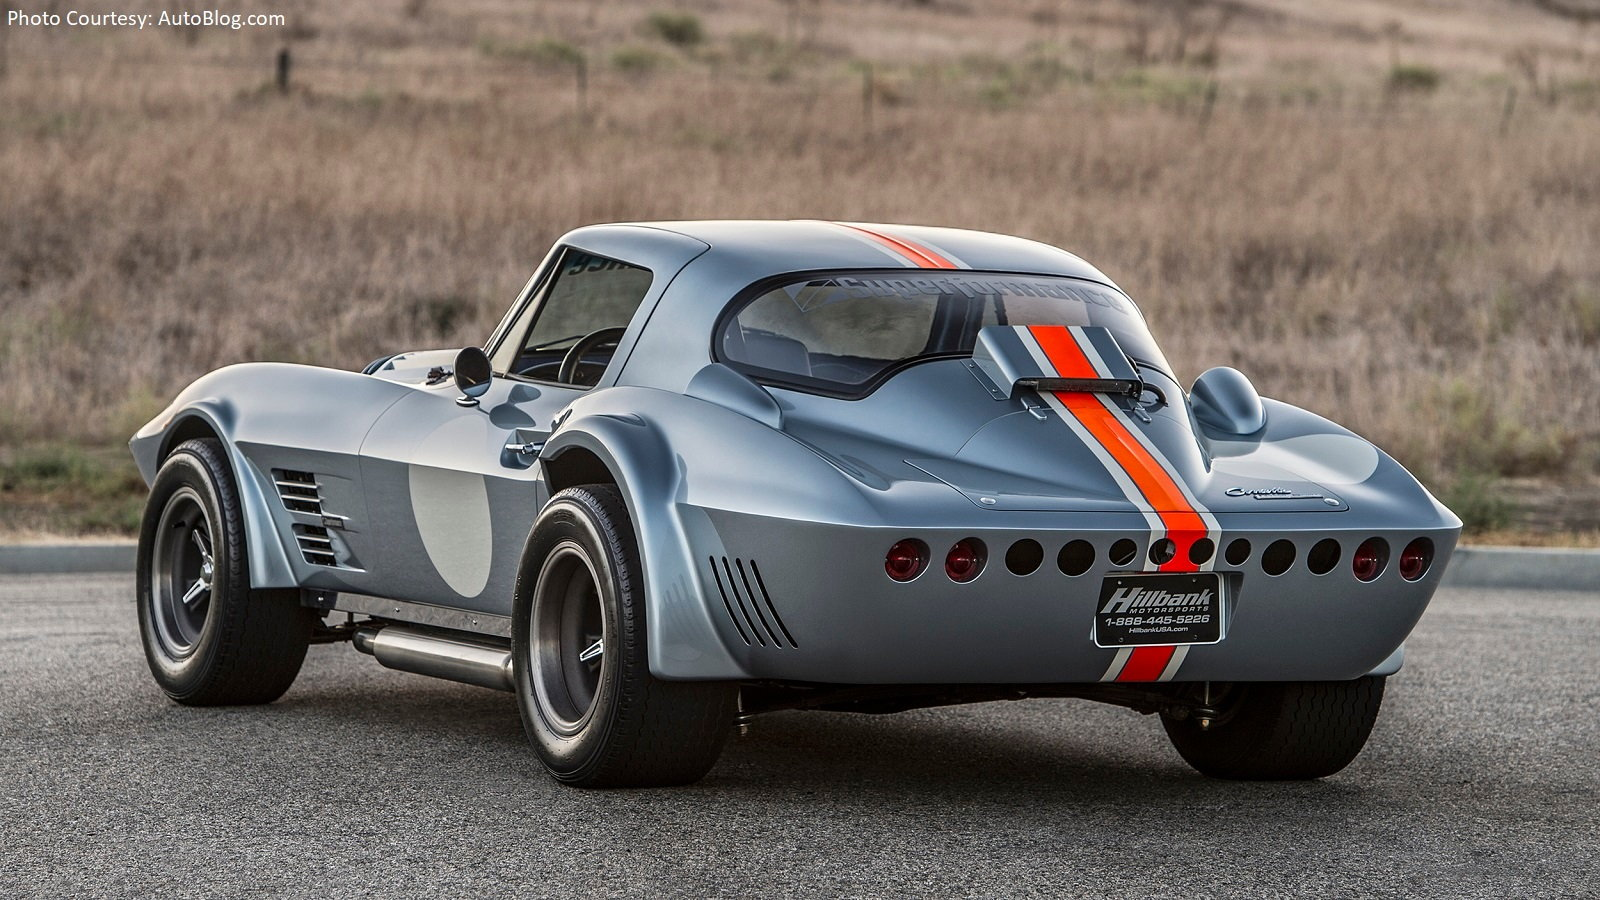 Take a Gander at Superformance's 1963 Grand Sport